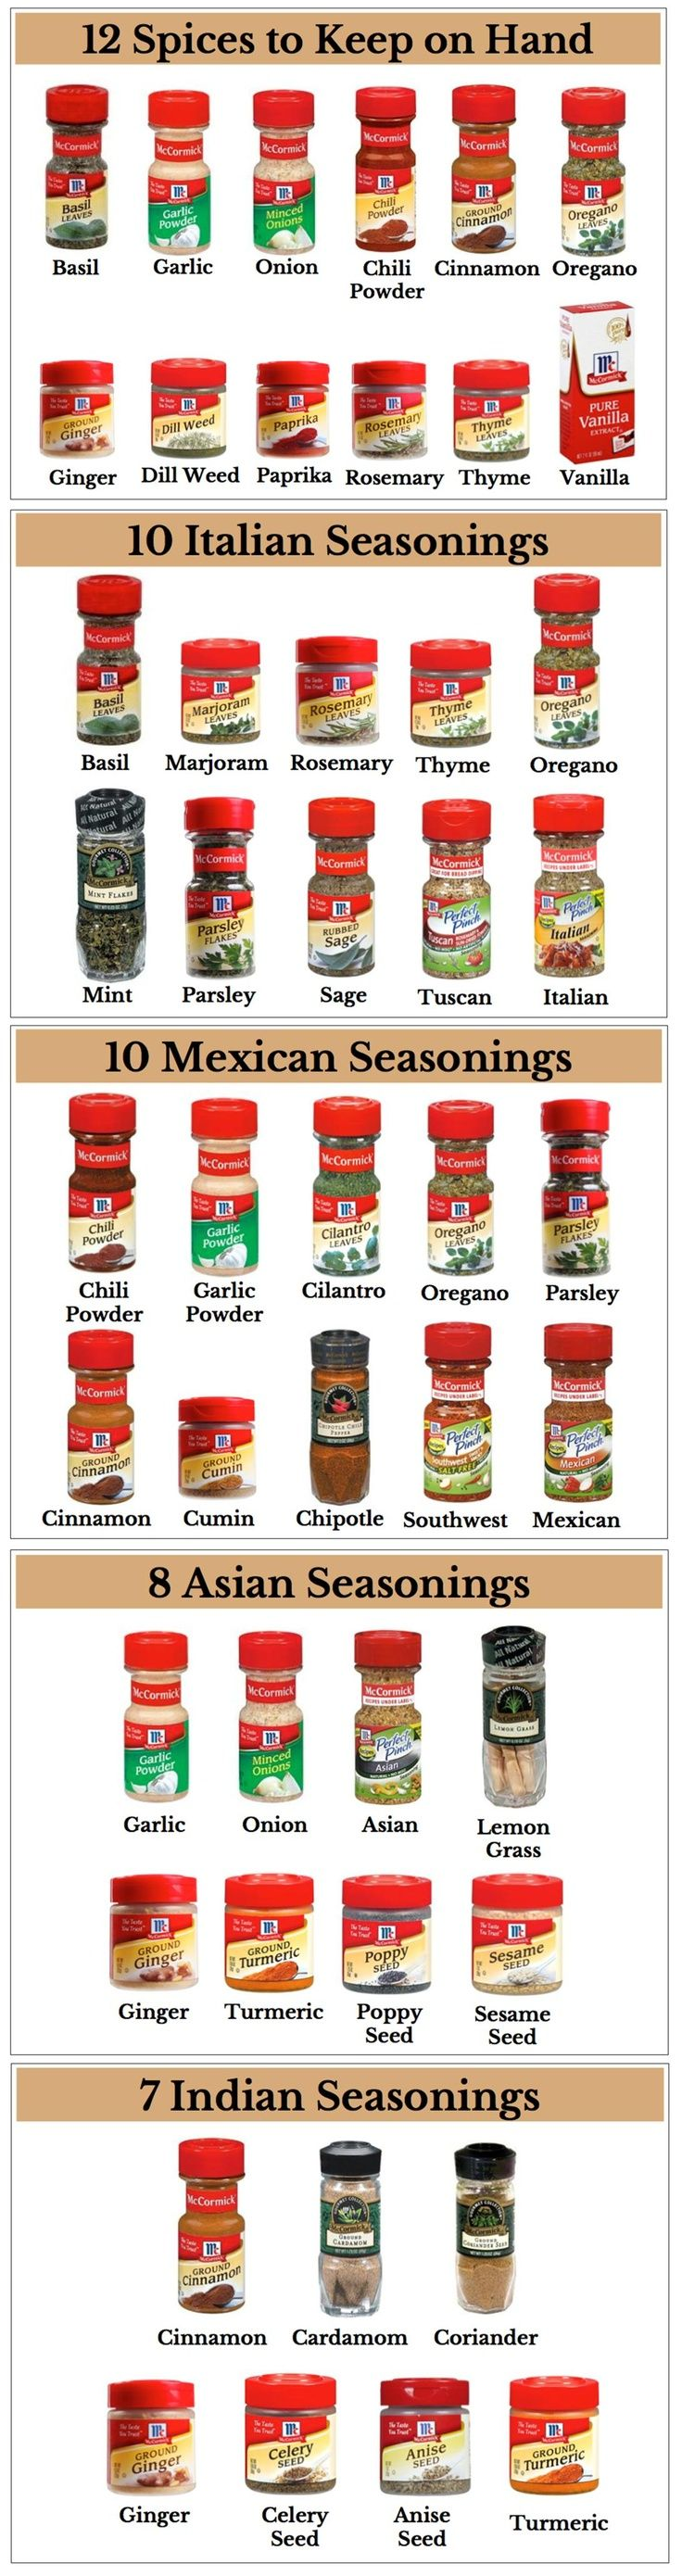 Spices to Always Have On Hand is part of Food, Food hacks, Cooking, Cooking and baking, Food and drink, Recipes - Awesome list of Spices to Always Have On Hand in the kitchen for baking and cooking!